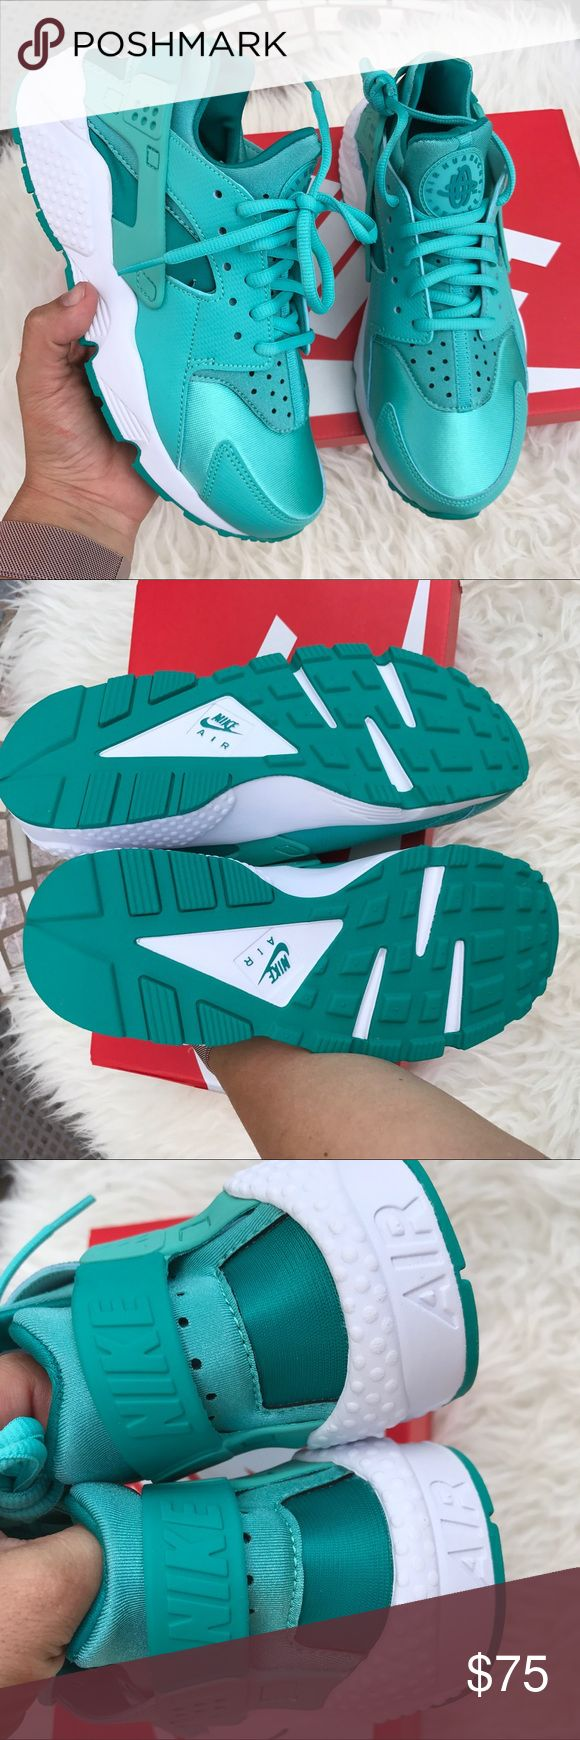 NIKE WOMENS AIR HUARACHE MINT/TEAL SIZE 8 new NIKE WOMENS AIR HUARACHE MINT/TEAL SIZE 8 new 100% authentic (i keep proof of purchase for all my items) itemcloset#trethr Nike Shoes https://tmblr.co/Z1jewd2LZFvg0?m4